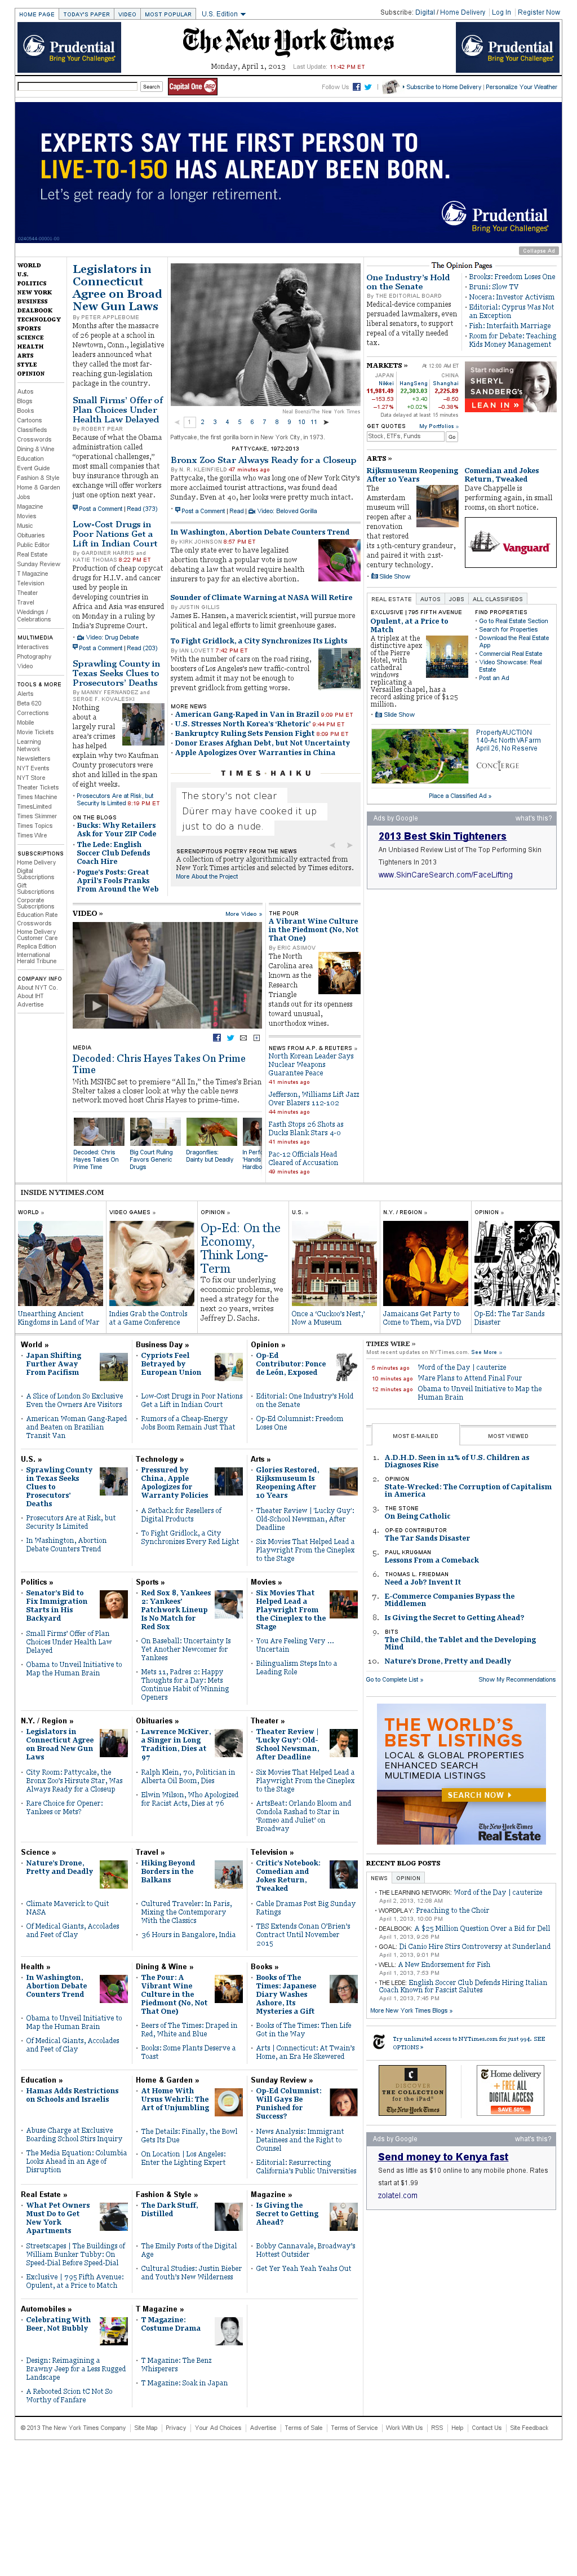 The New York Times at Tuesday April 2, 2013, 4:17 a.m. UTC